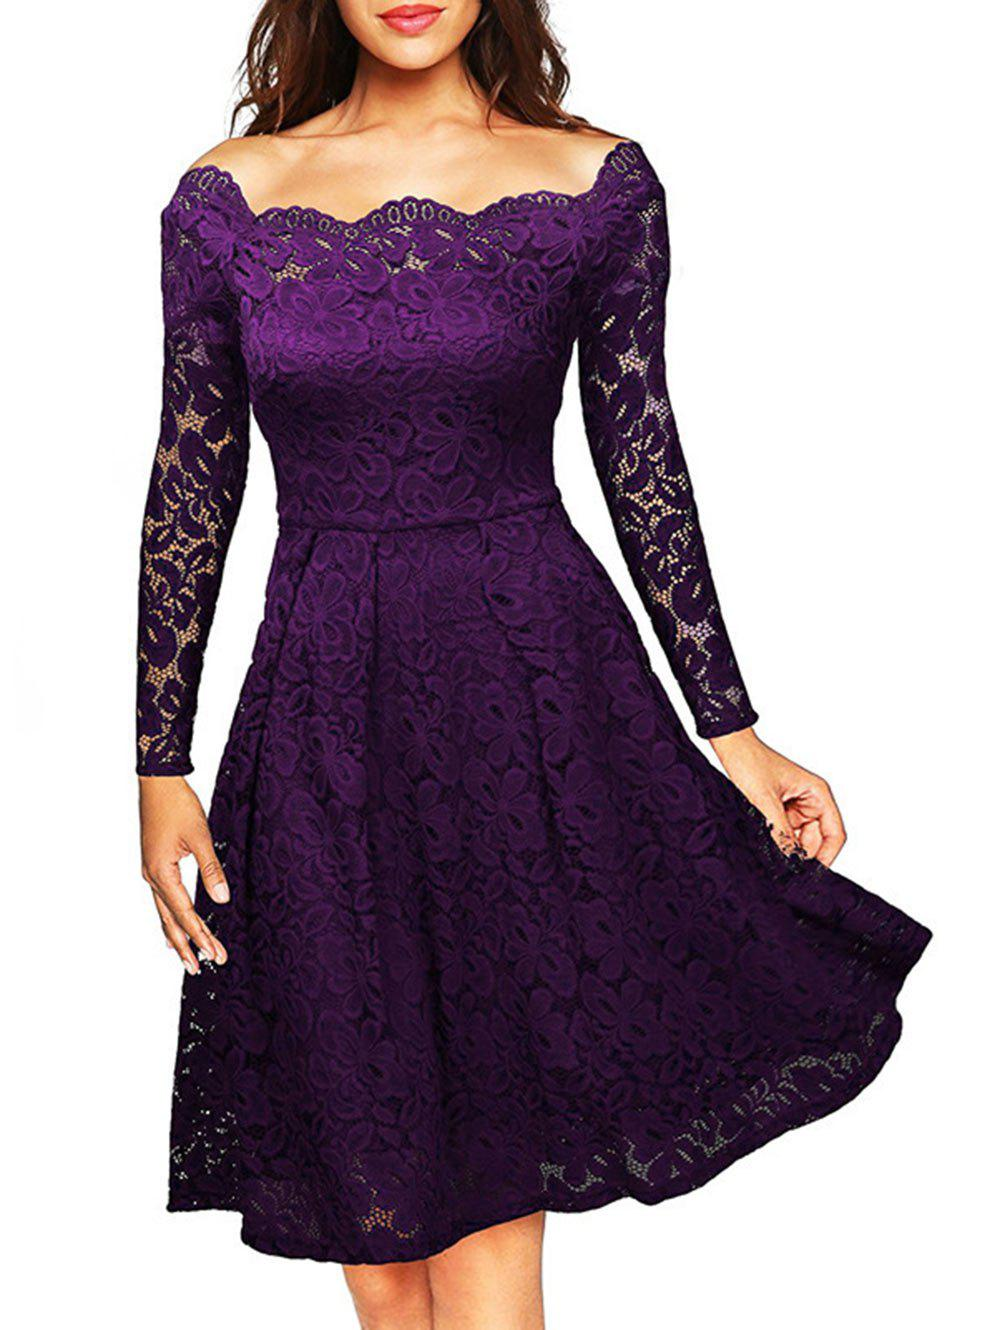 Hot Long Sleeve Off The Shoulder Lace Dress